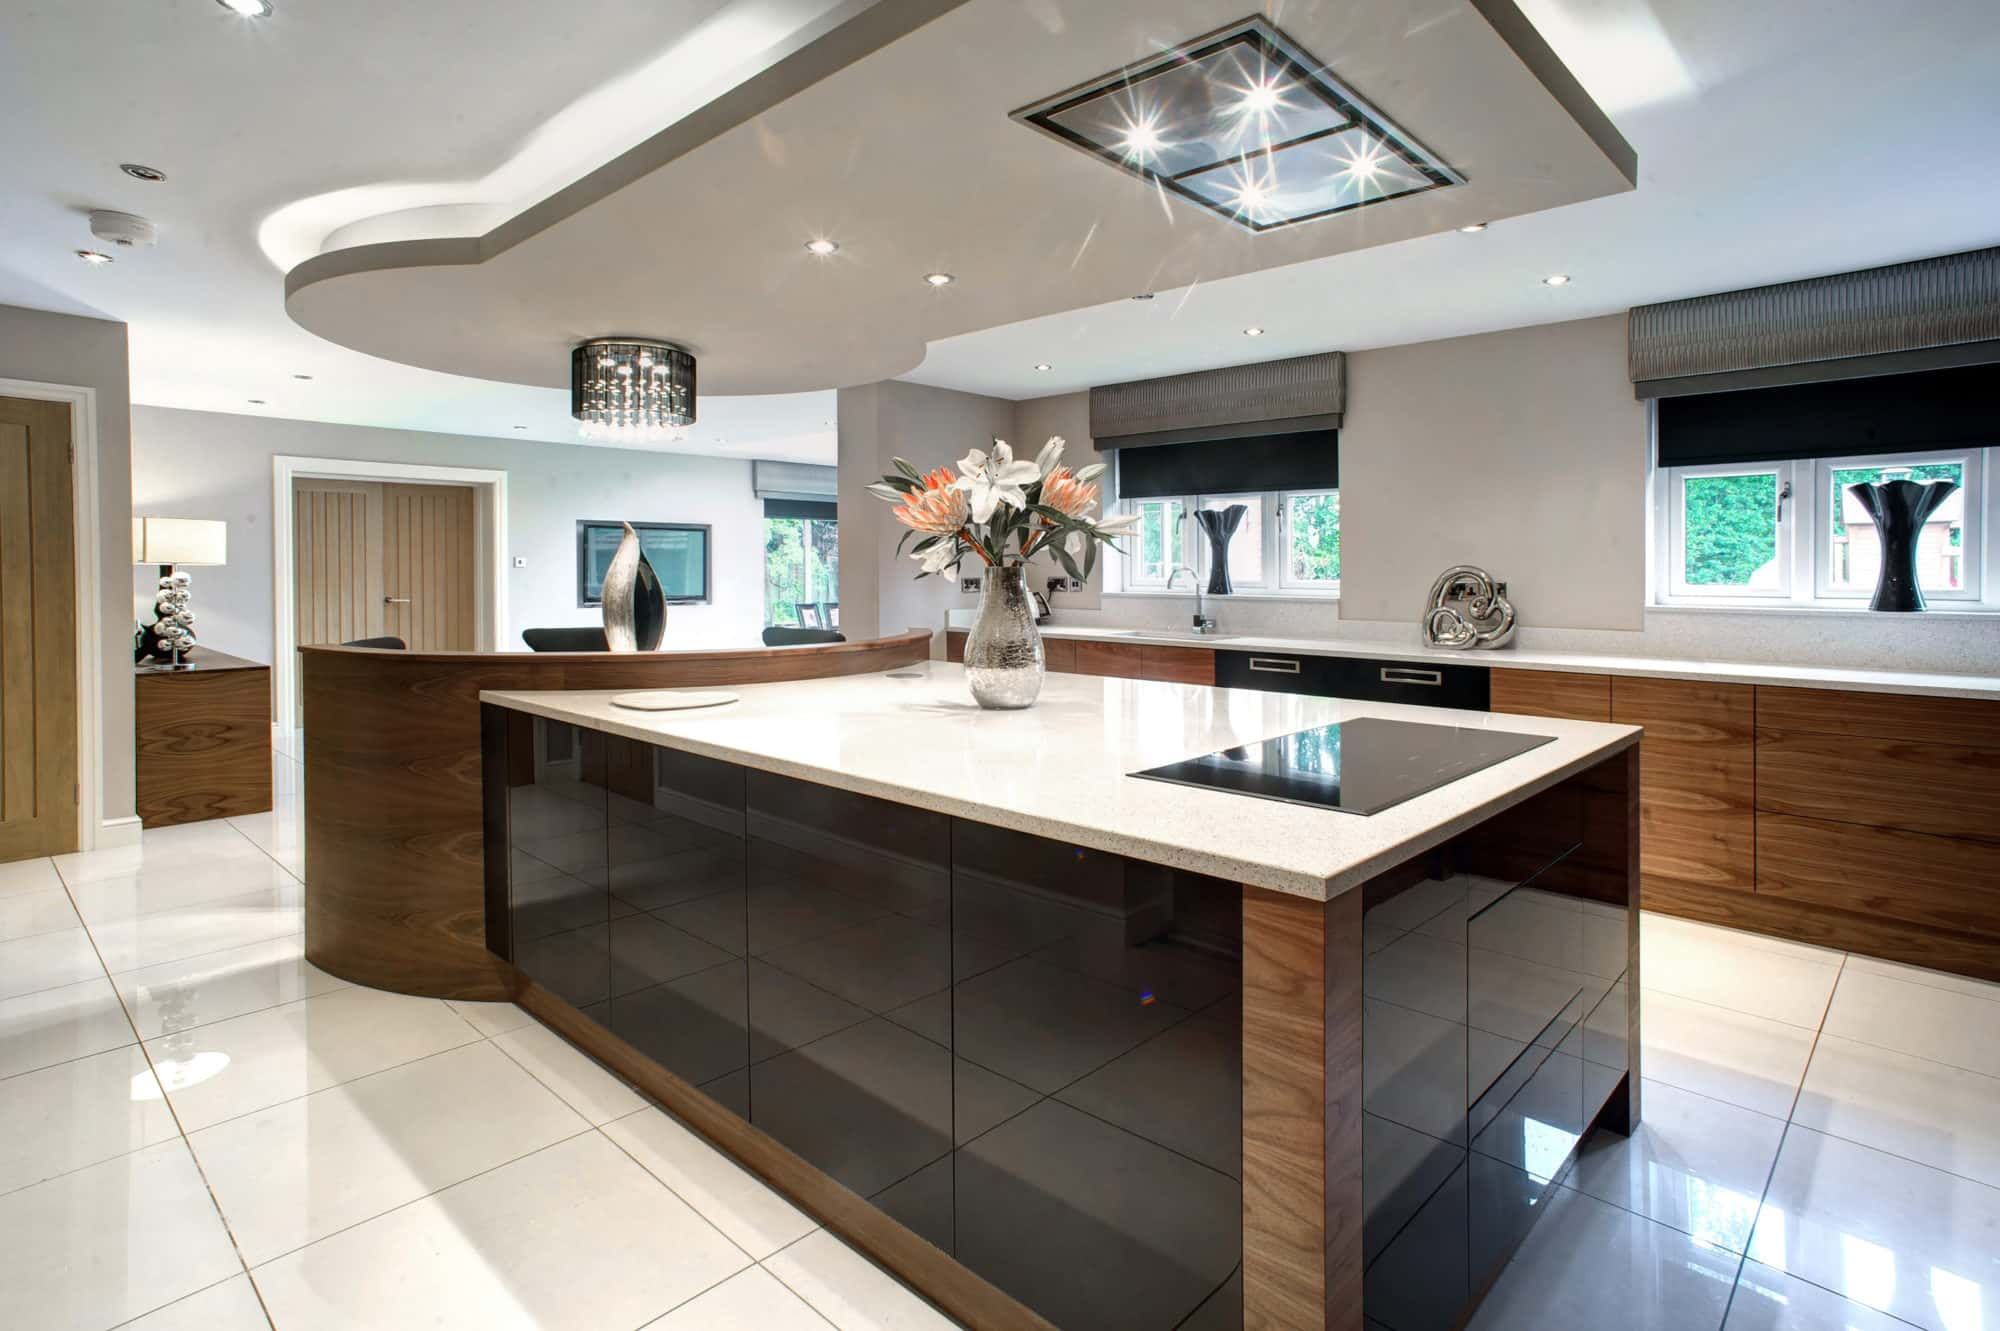 Bespoke Kitchens Bristol